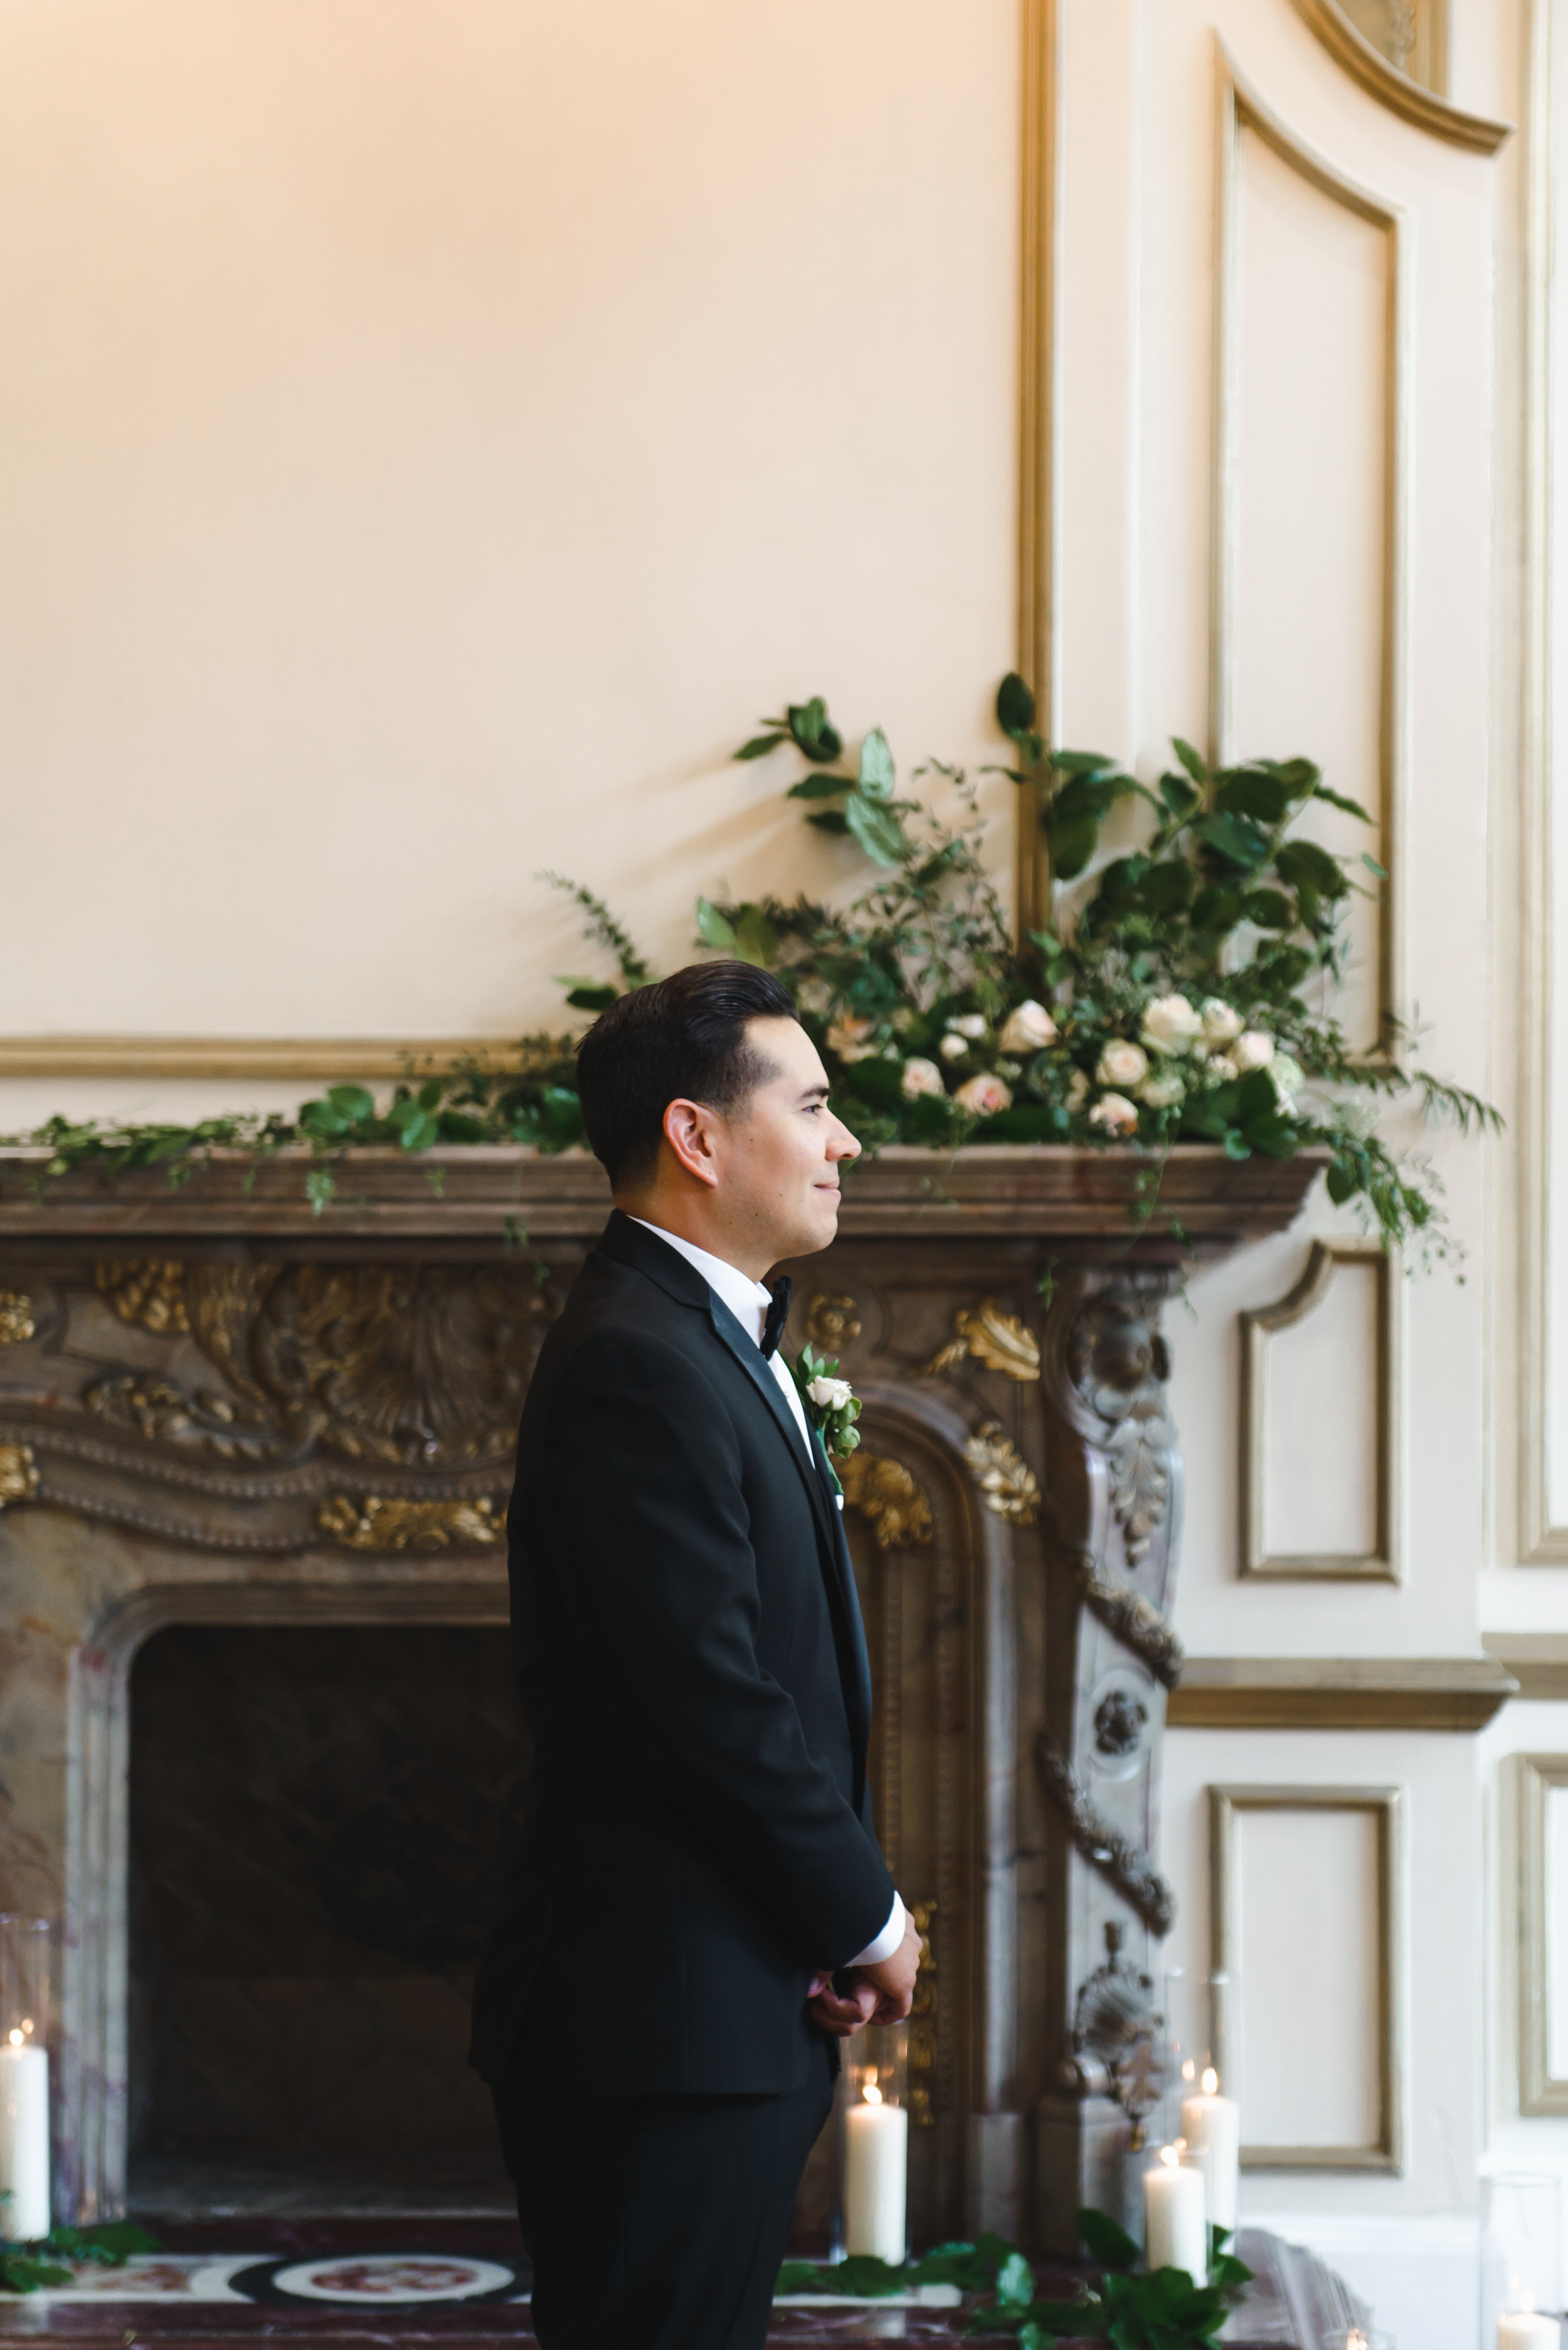 Mantel ceremony florals first look #LRQCfloral.jpg